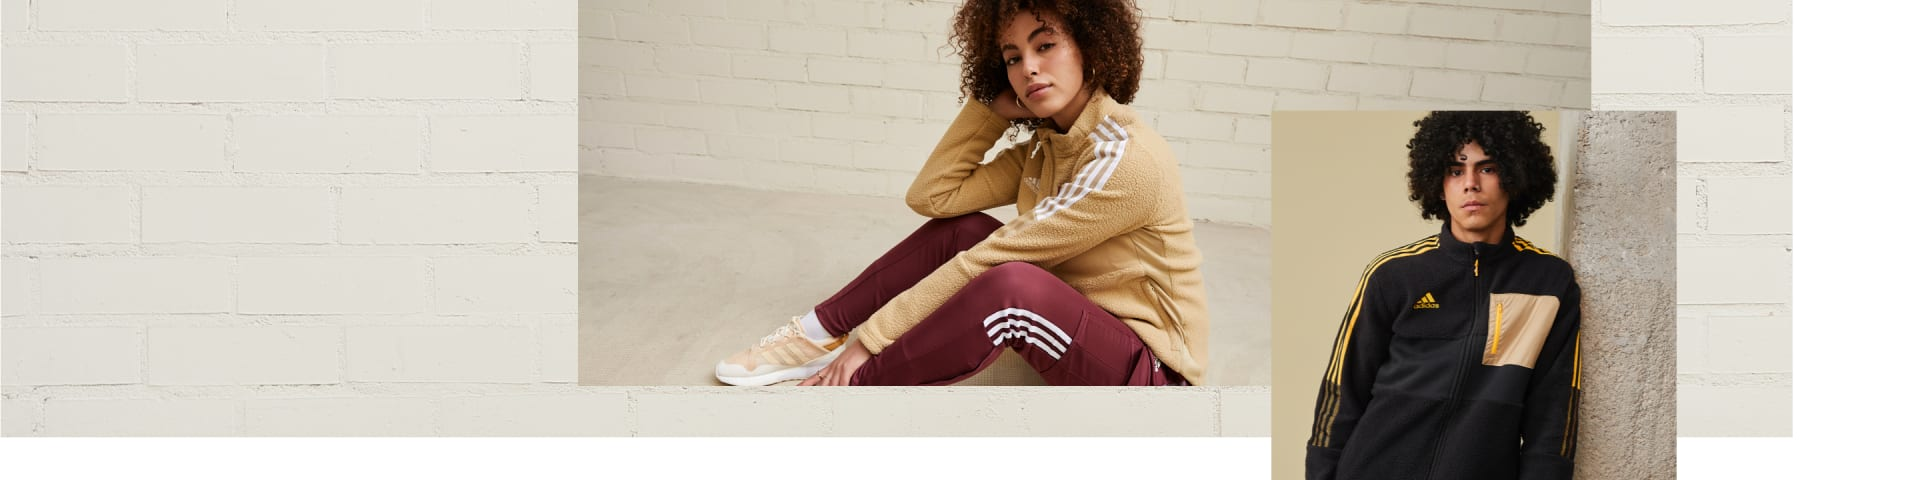 lifestyle image showcasing the latest Winterized collection from adidas TIRO.